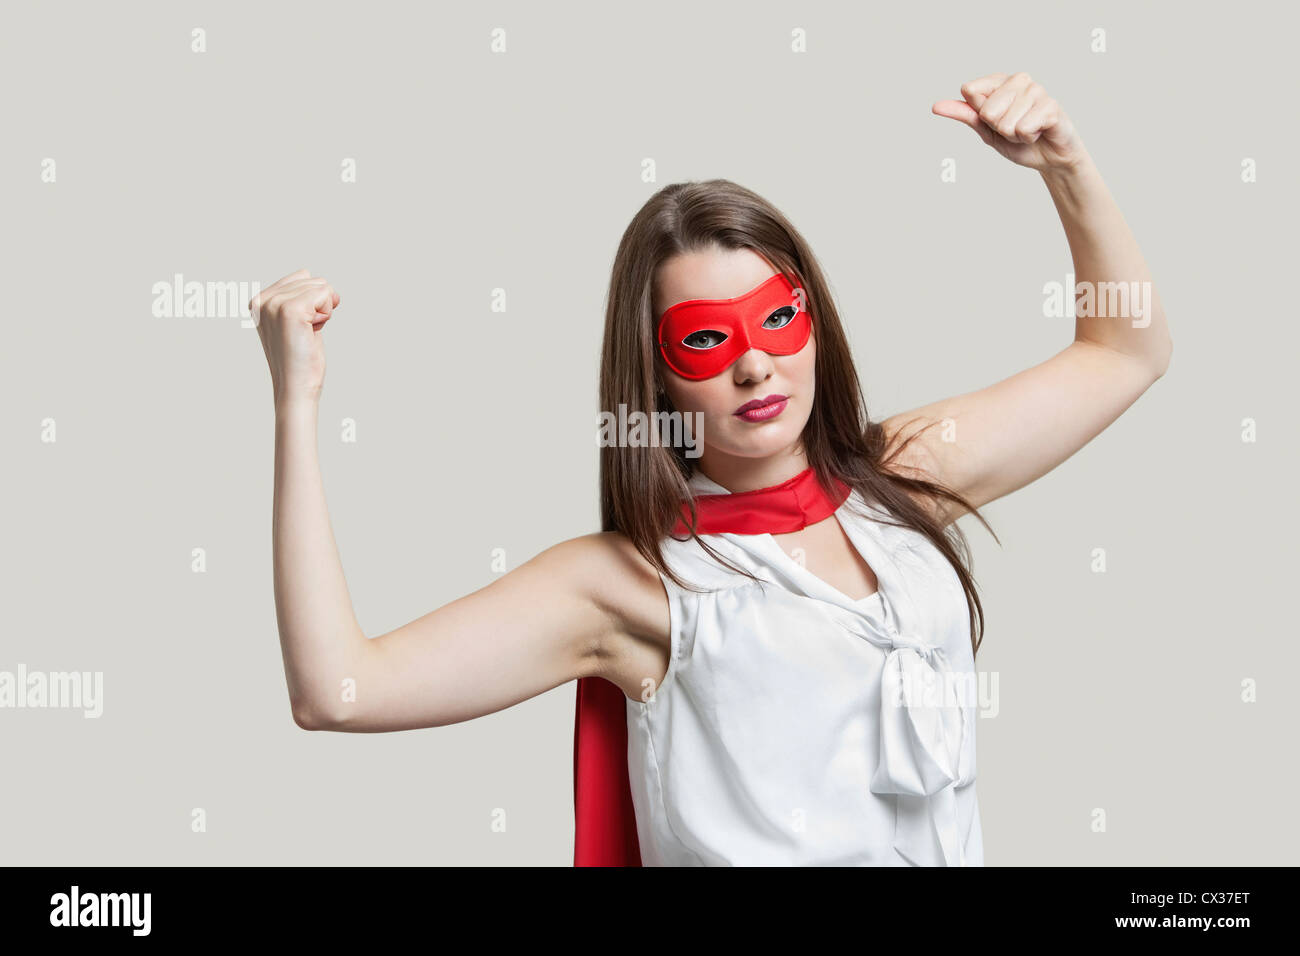 Portrait of a young woman in super hero costume flexing muscles over gray background  sc 1 st  Alamy & Portrait of a young woman in super hero costume flexing muscles over ...